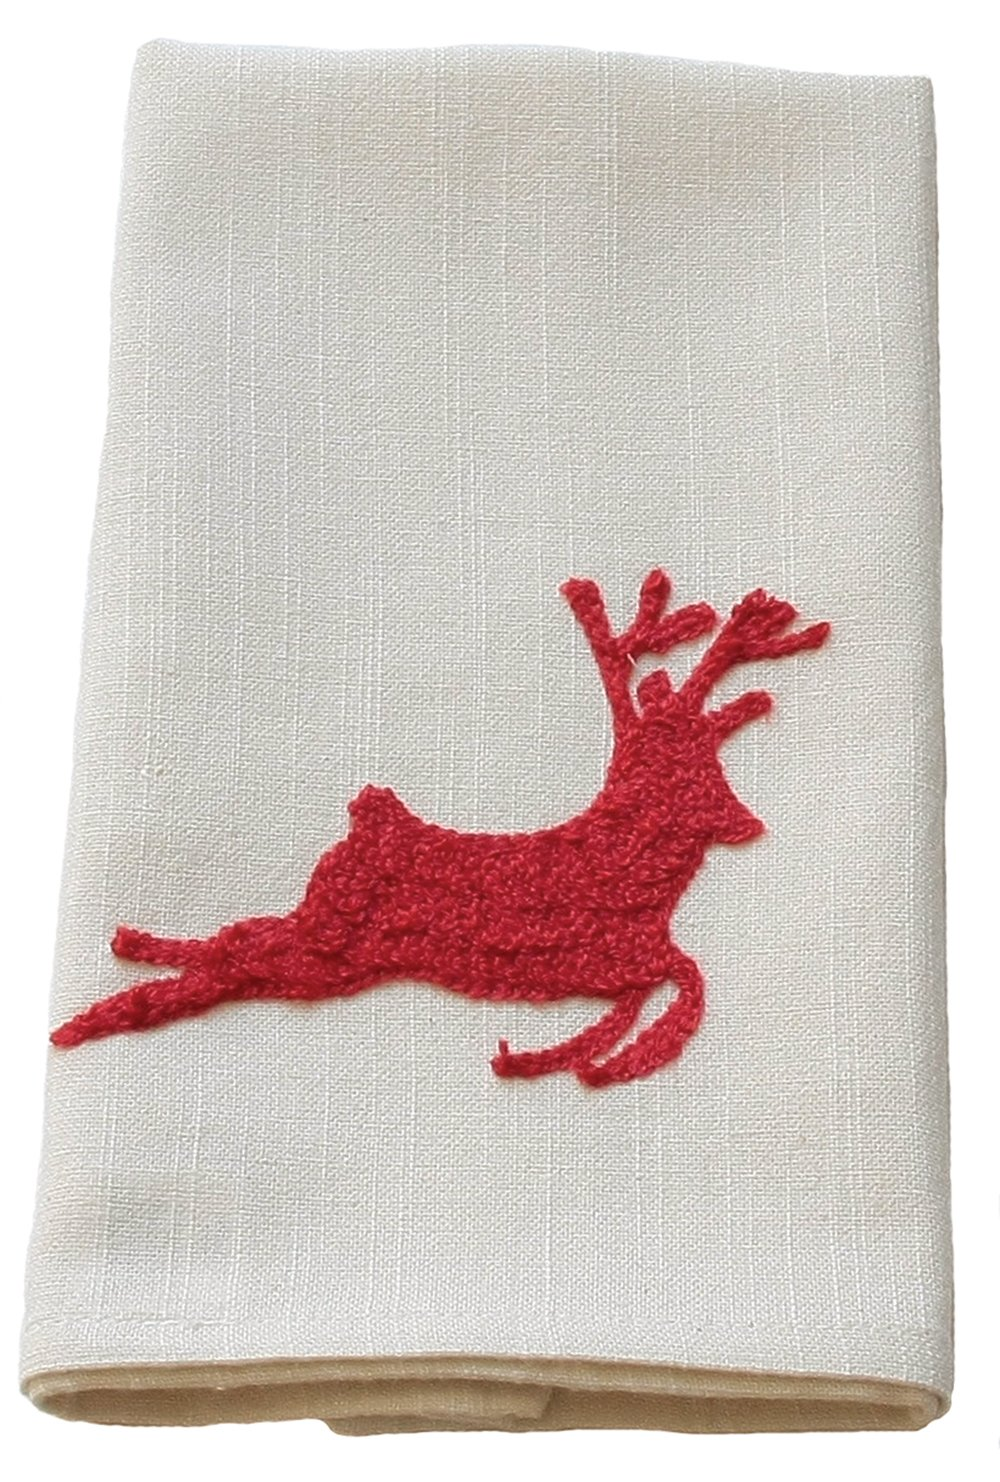 Xia Home Fashions Reindeer Crewel Embroidery Holiday Christmas Tea Towel, 14 by 22-Inch by Xia Home Fashions